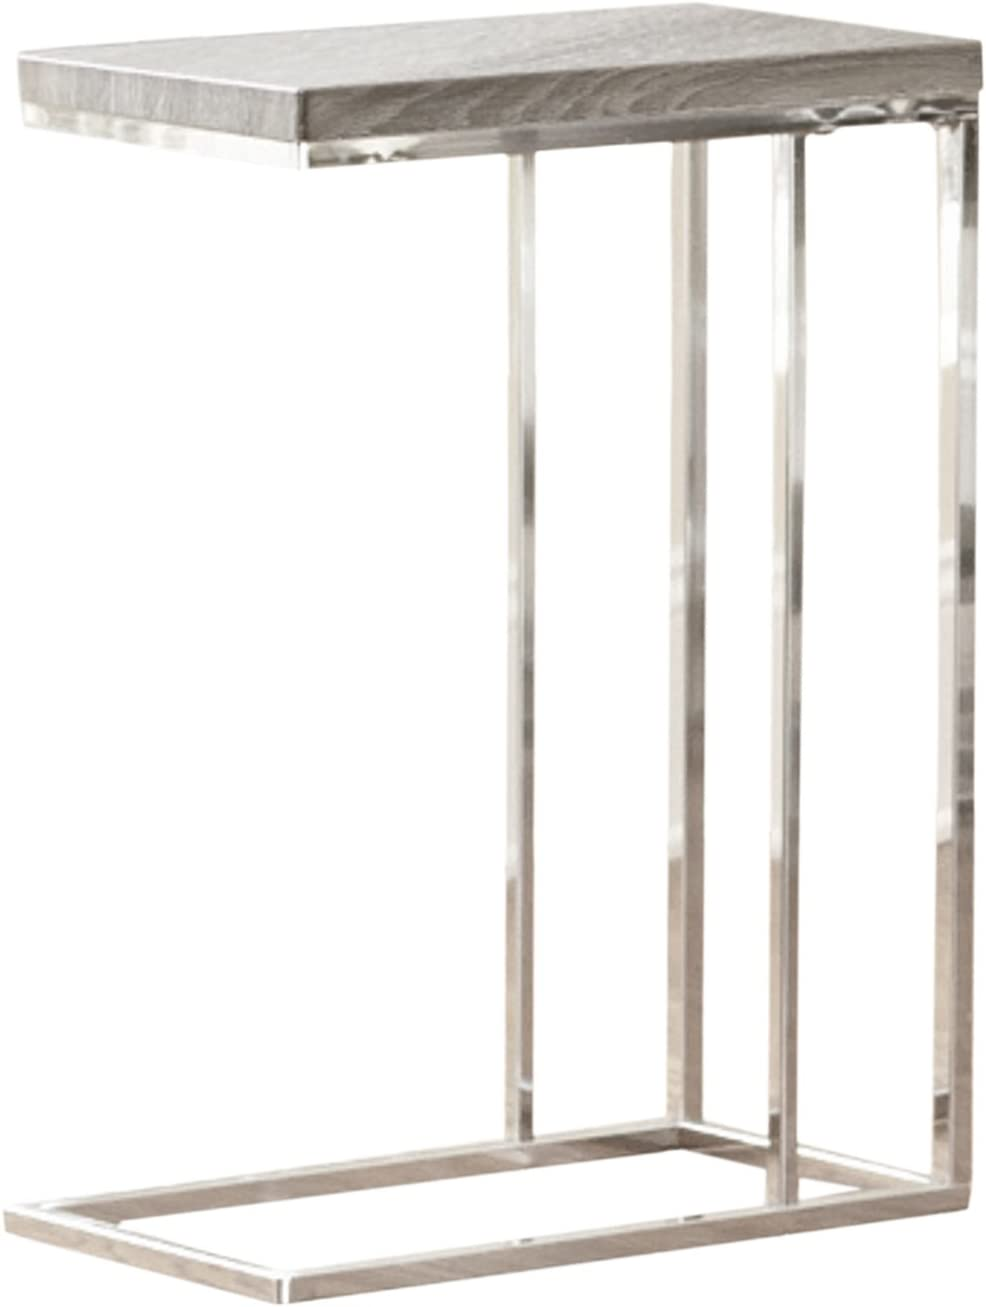 """Steve Silver Company Lucia Chairside End Table, 10"""" x 18"""" x 25"""", Grey/Brown"""